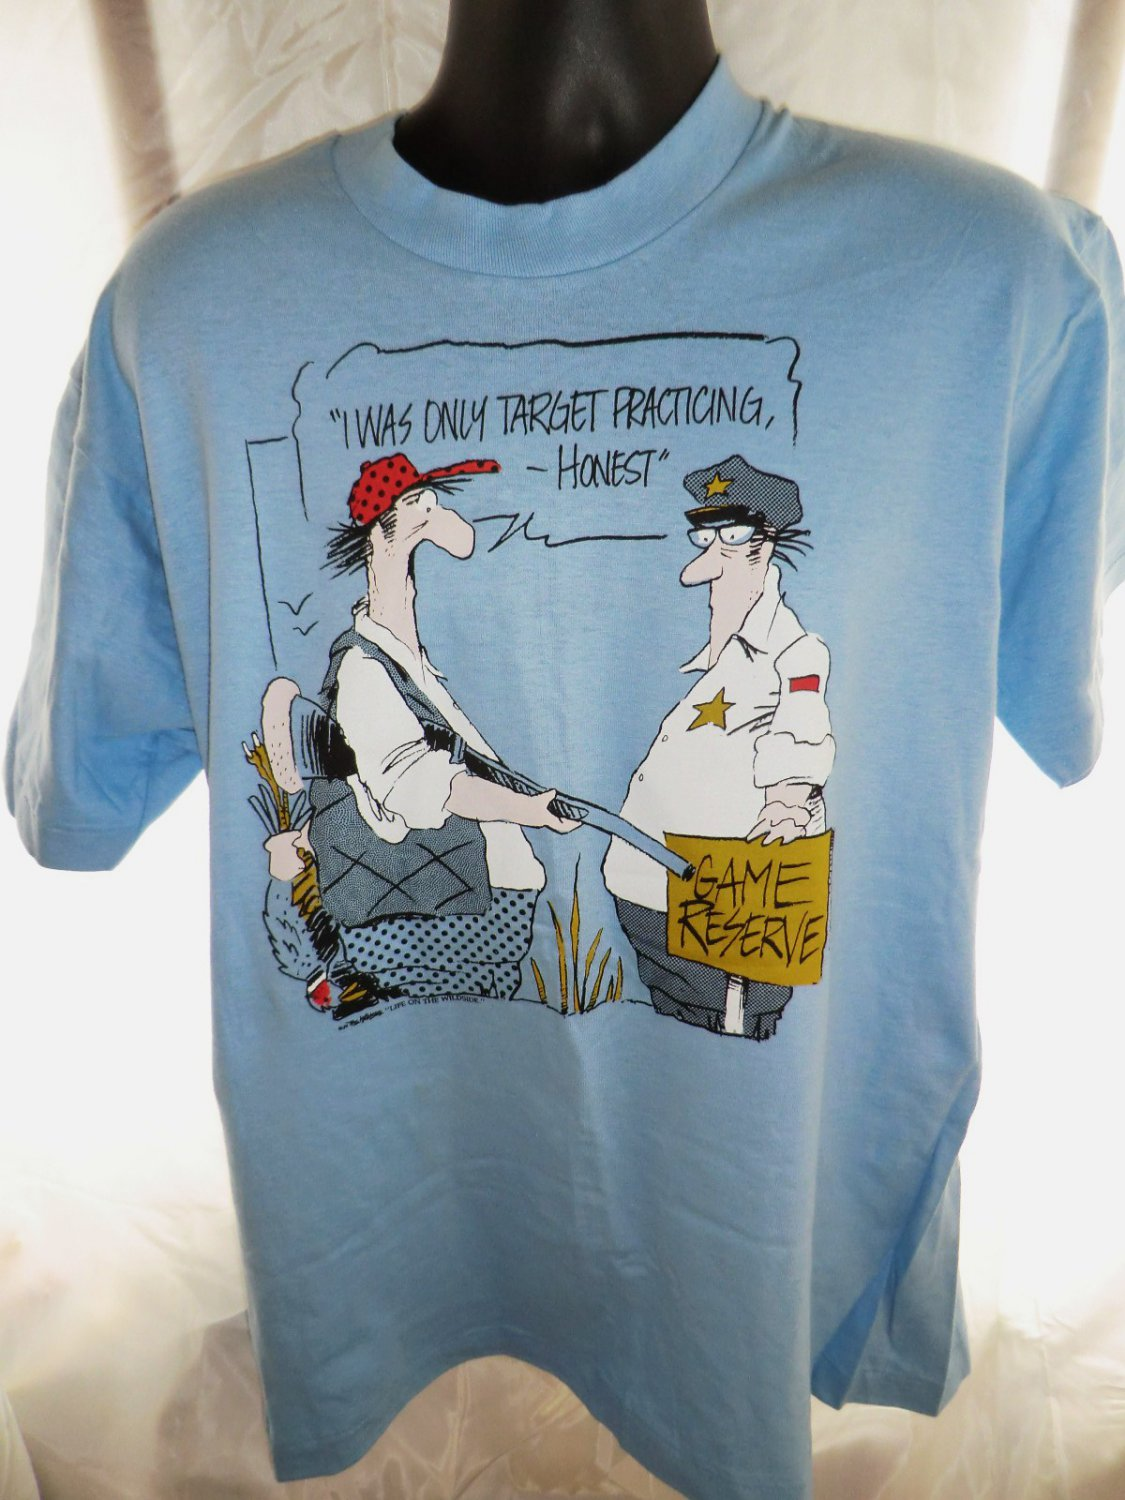 Funny Hunting T-Shirt Size XL~ I Was Only Target